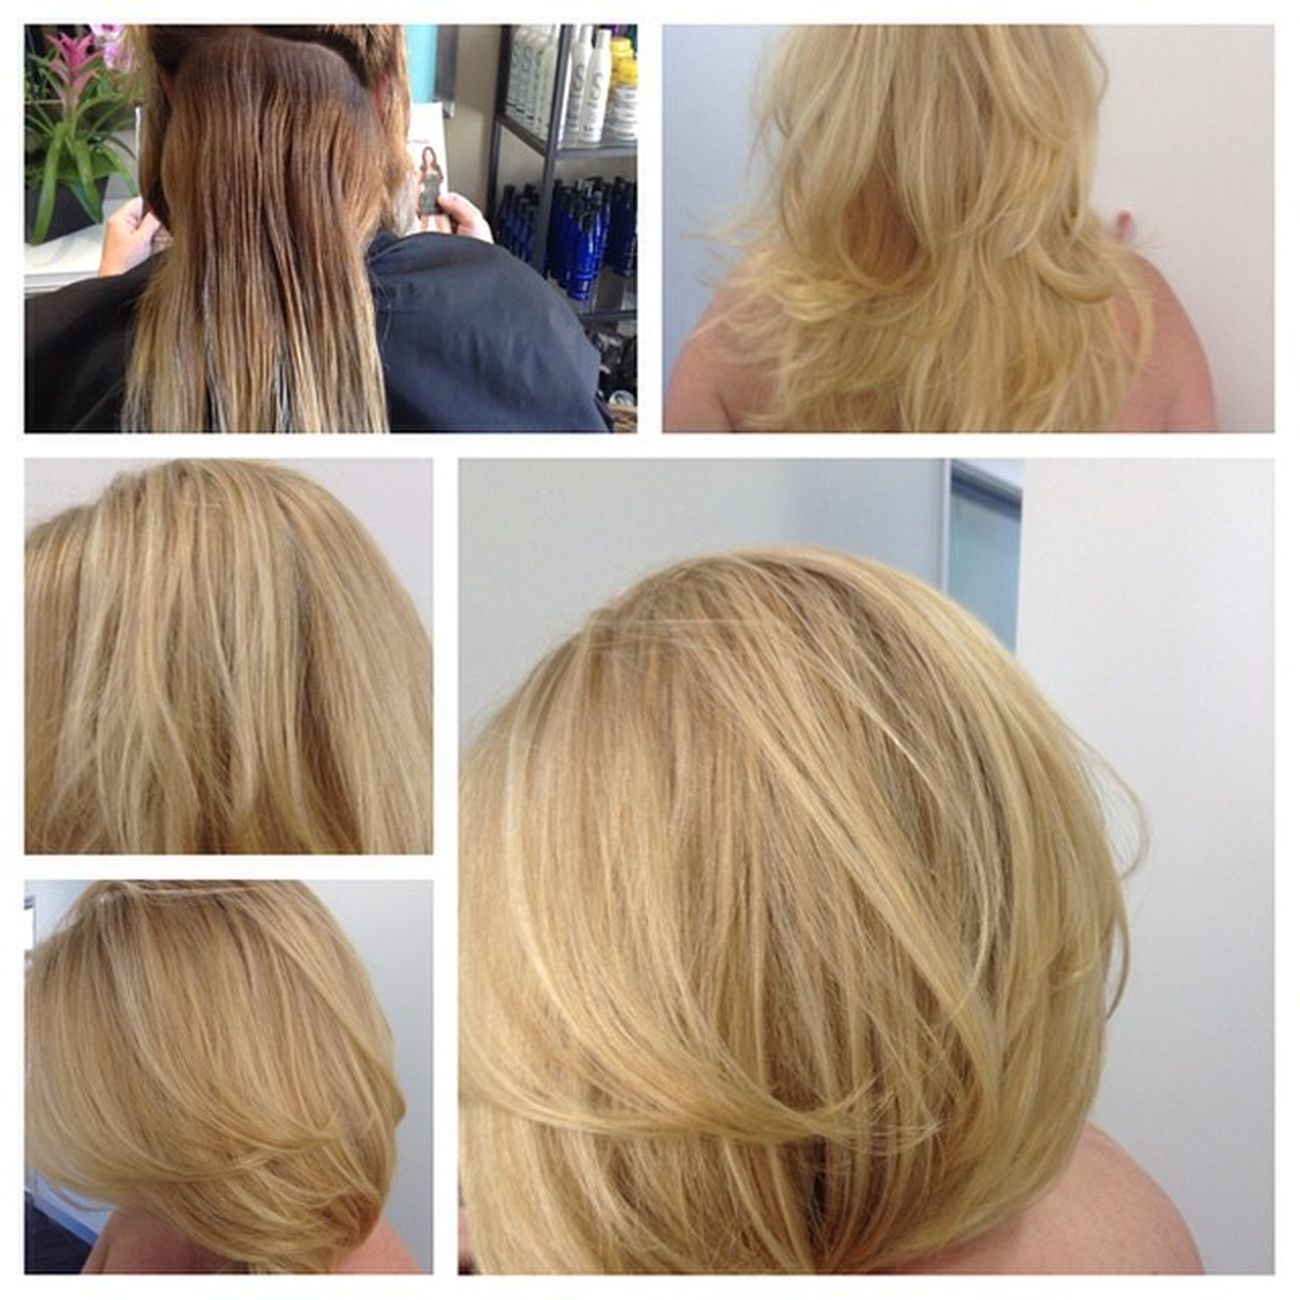 One of my Beautyblogger friends Bblogger Blondehairdontcare CorrectiveColor picstitch